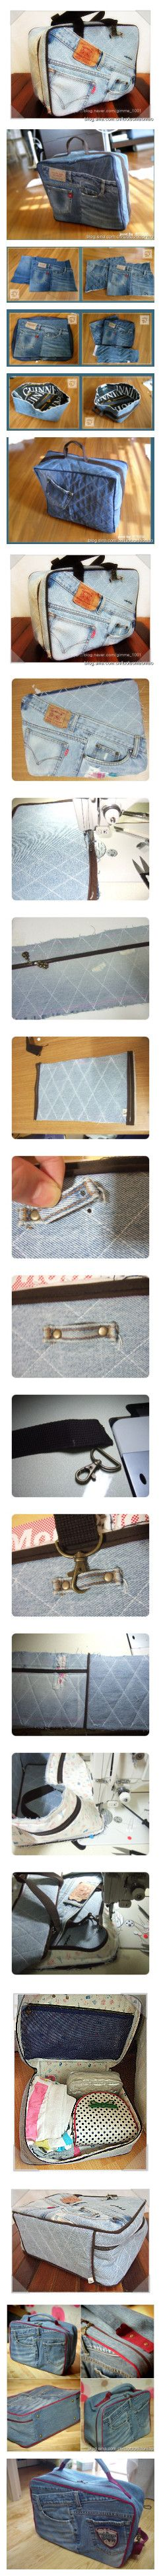 Three denim travel bag tutorials. Great for up-cycling those jeans with the blown-out knees!